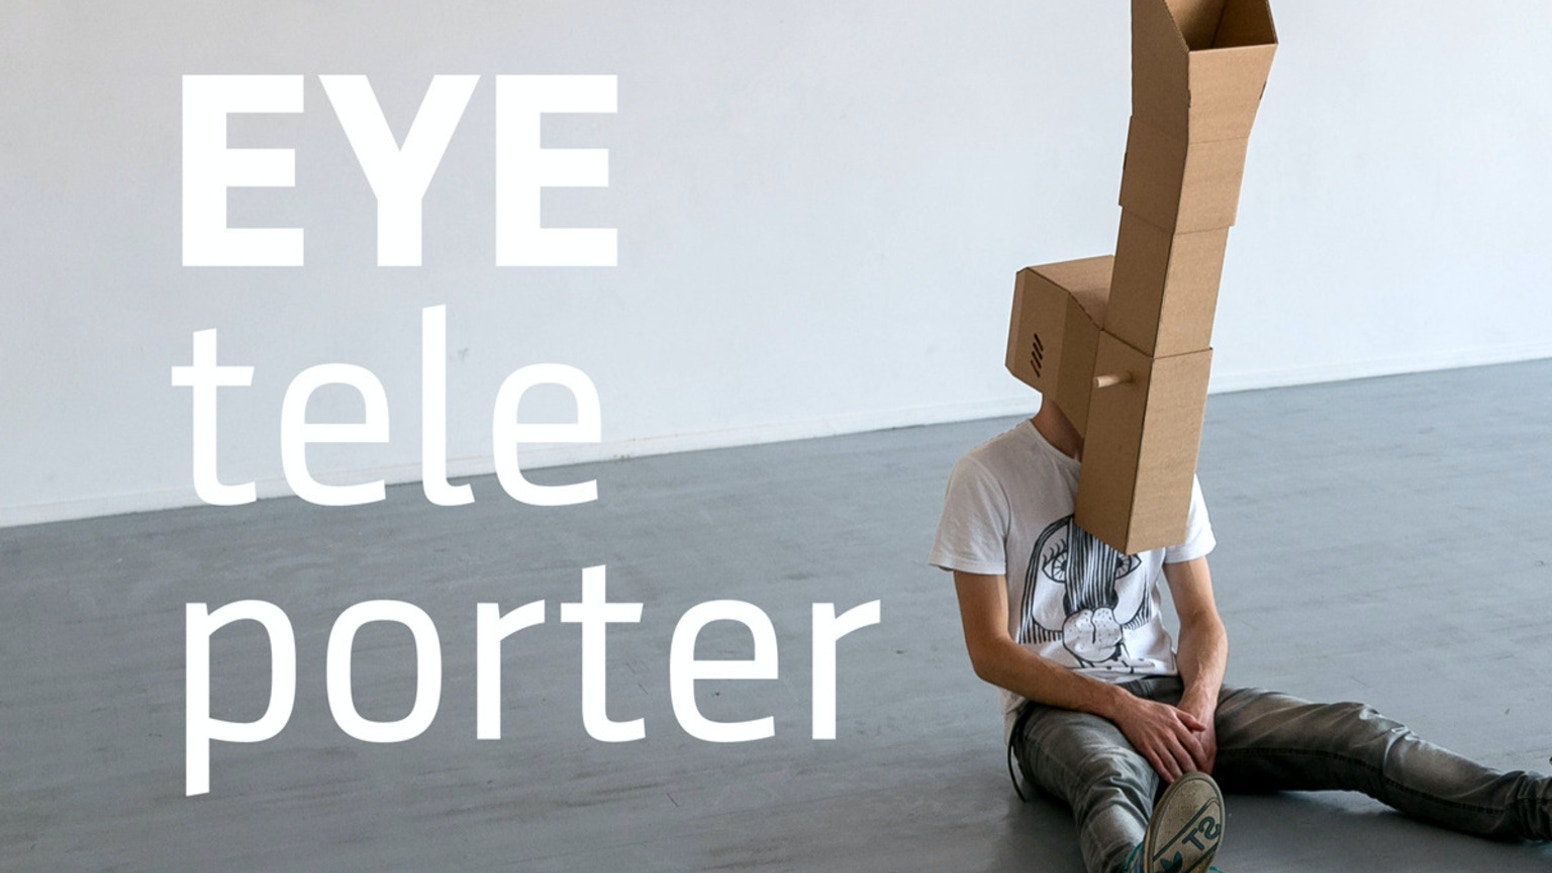 EYEteleporter // periscopic mask that displaces your eyesight. A tweak to your vision and body image.